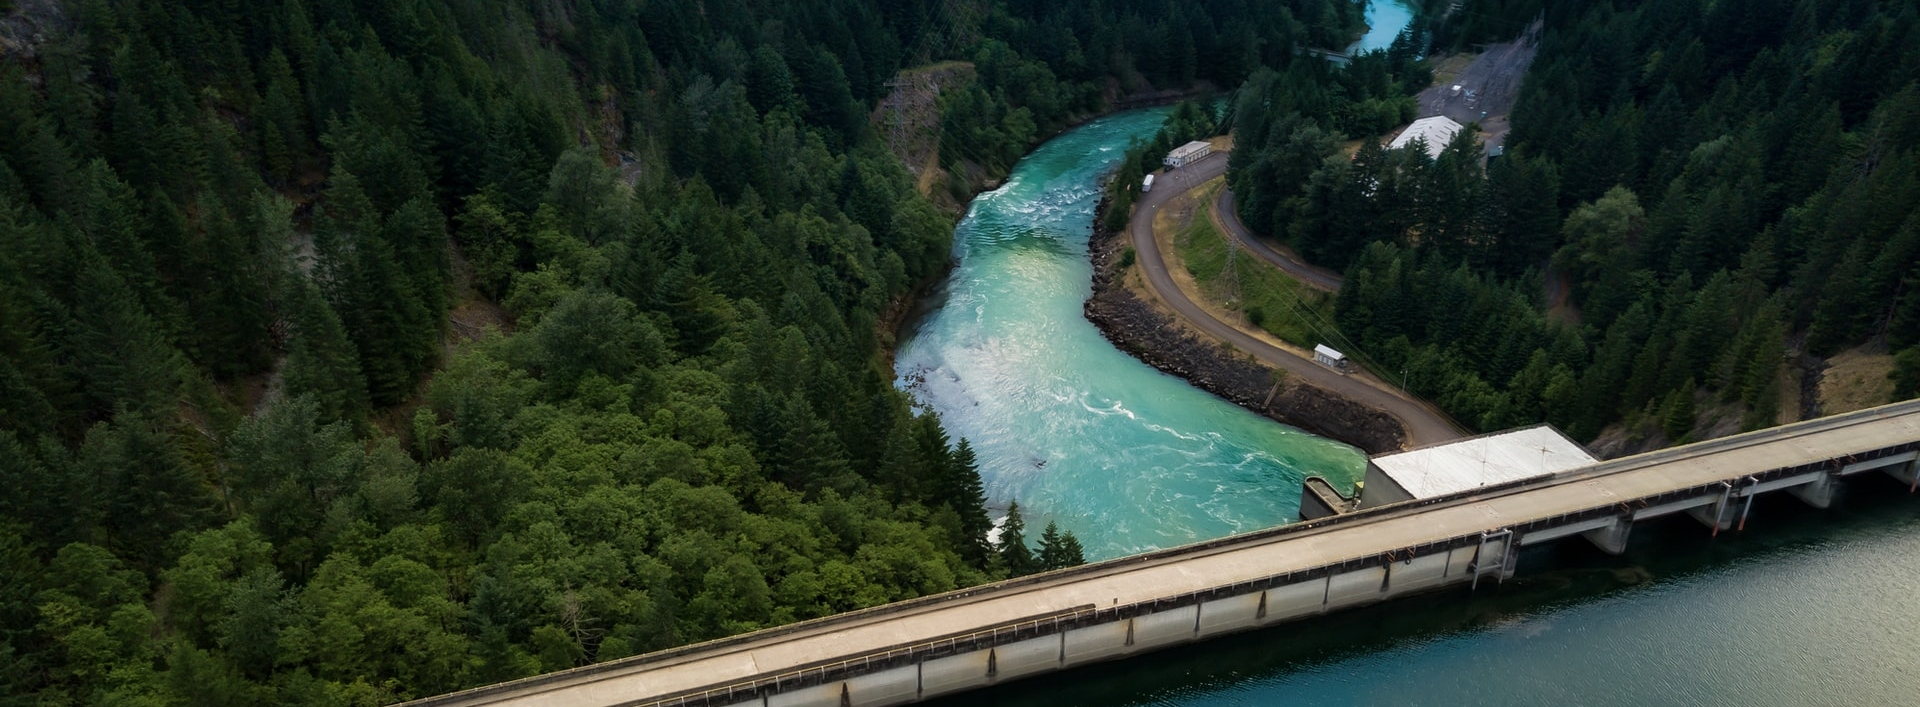 View of a dam on a river from above